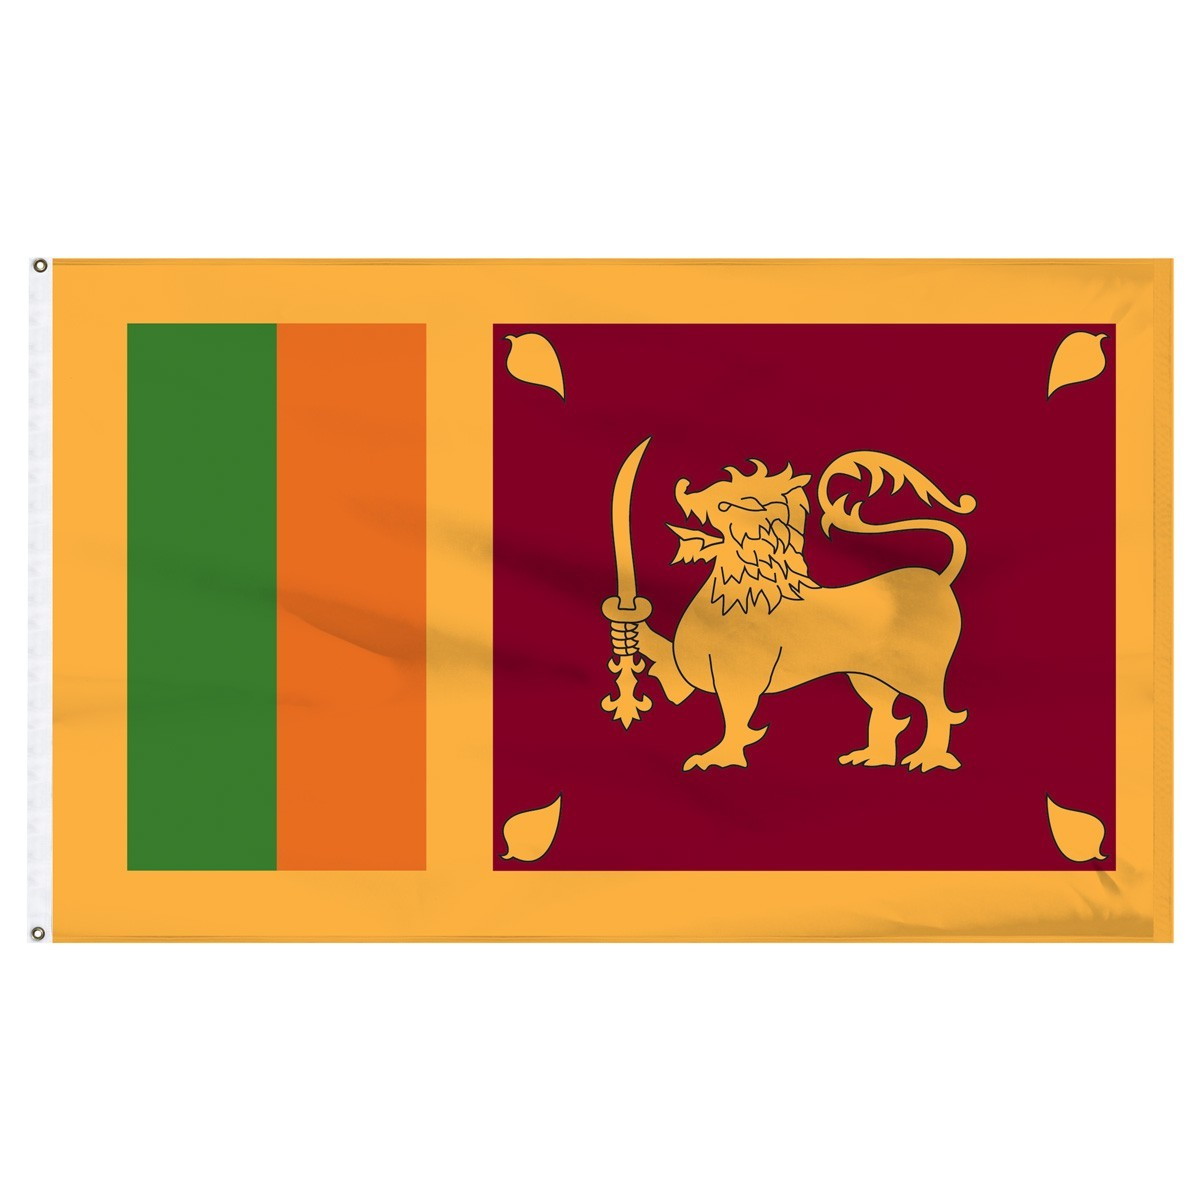 Sri Lanka 3' x 5' Outdoor Nylon Flag